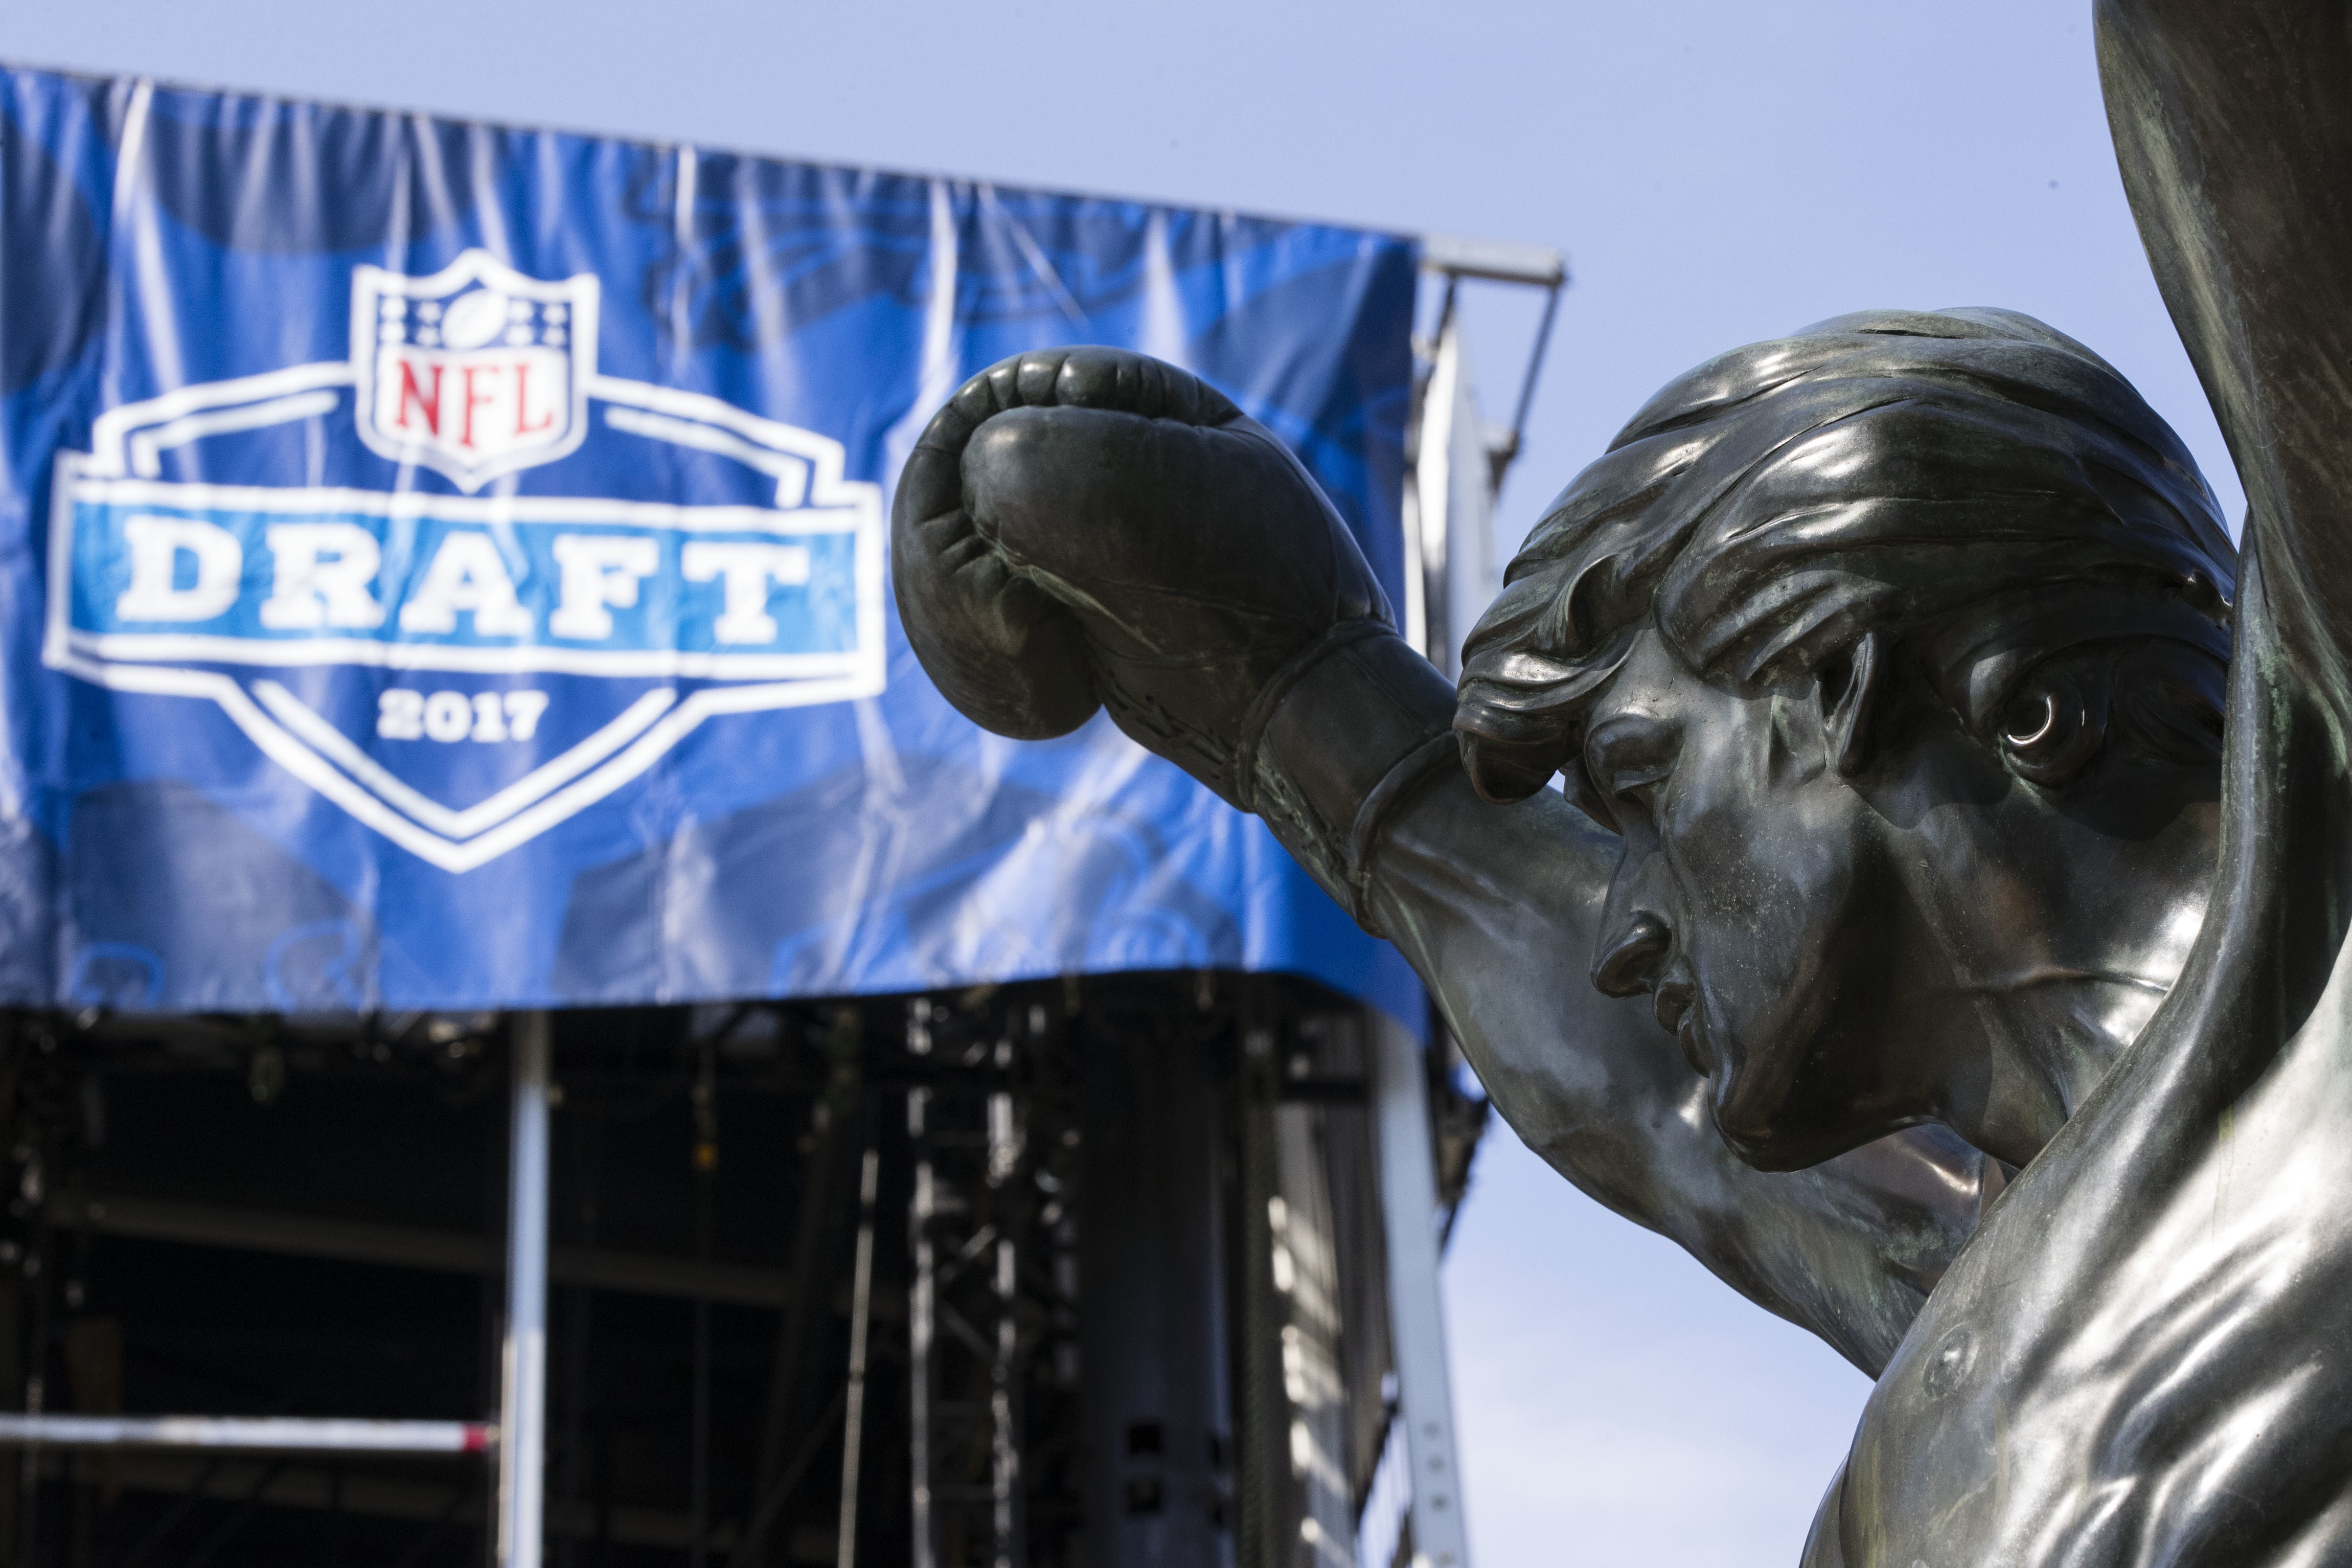 The Rocky statue stands in view of the stage being constructed for the upcoming 2017 NFL football draft on the steps of the Philadelphia Museum of Art in Philadelphia, Tuesday, April 18, 2017. When the NFL chose Philadelphia to host the 2017 draft, they insisted on holding the three-day event at the Art Museum in front of the iconic Rocky steps. Mayor Jim Kenney and city officials made it happen so construction crews are putting together a 3,000-seat theater for an extravaganza that's expected to draw about 200,000 people to the venue. (AP Photo/Matt Rourke)